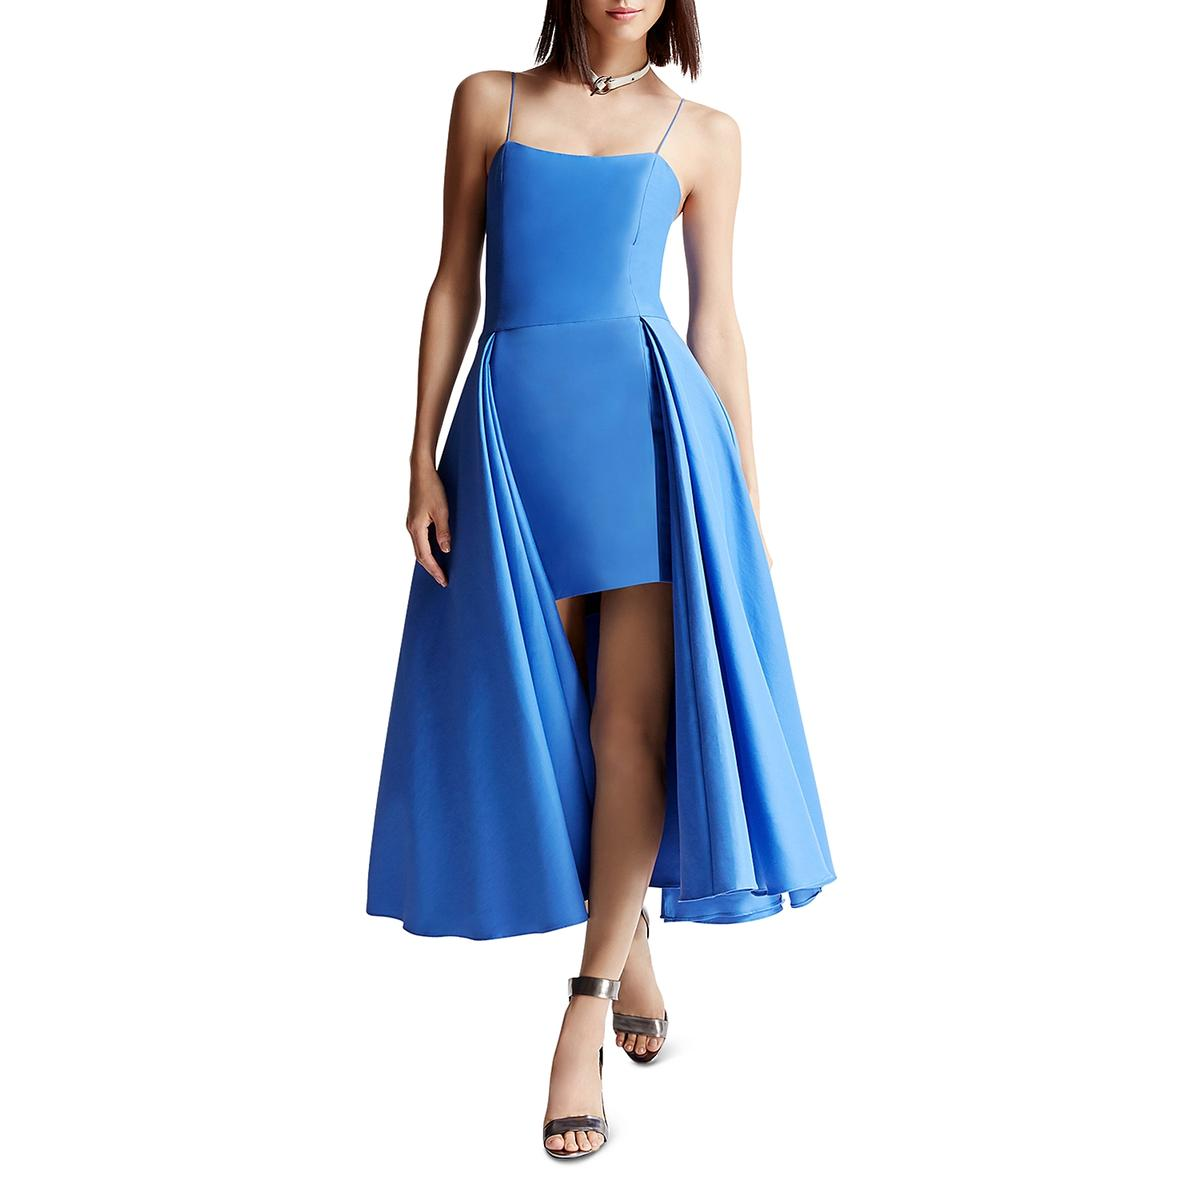 Halston Heritage Womens Fit /& Flare Party Cocktail Mini Dress BHFO 1368